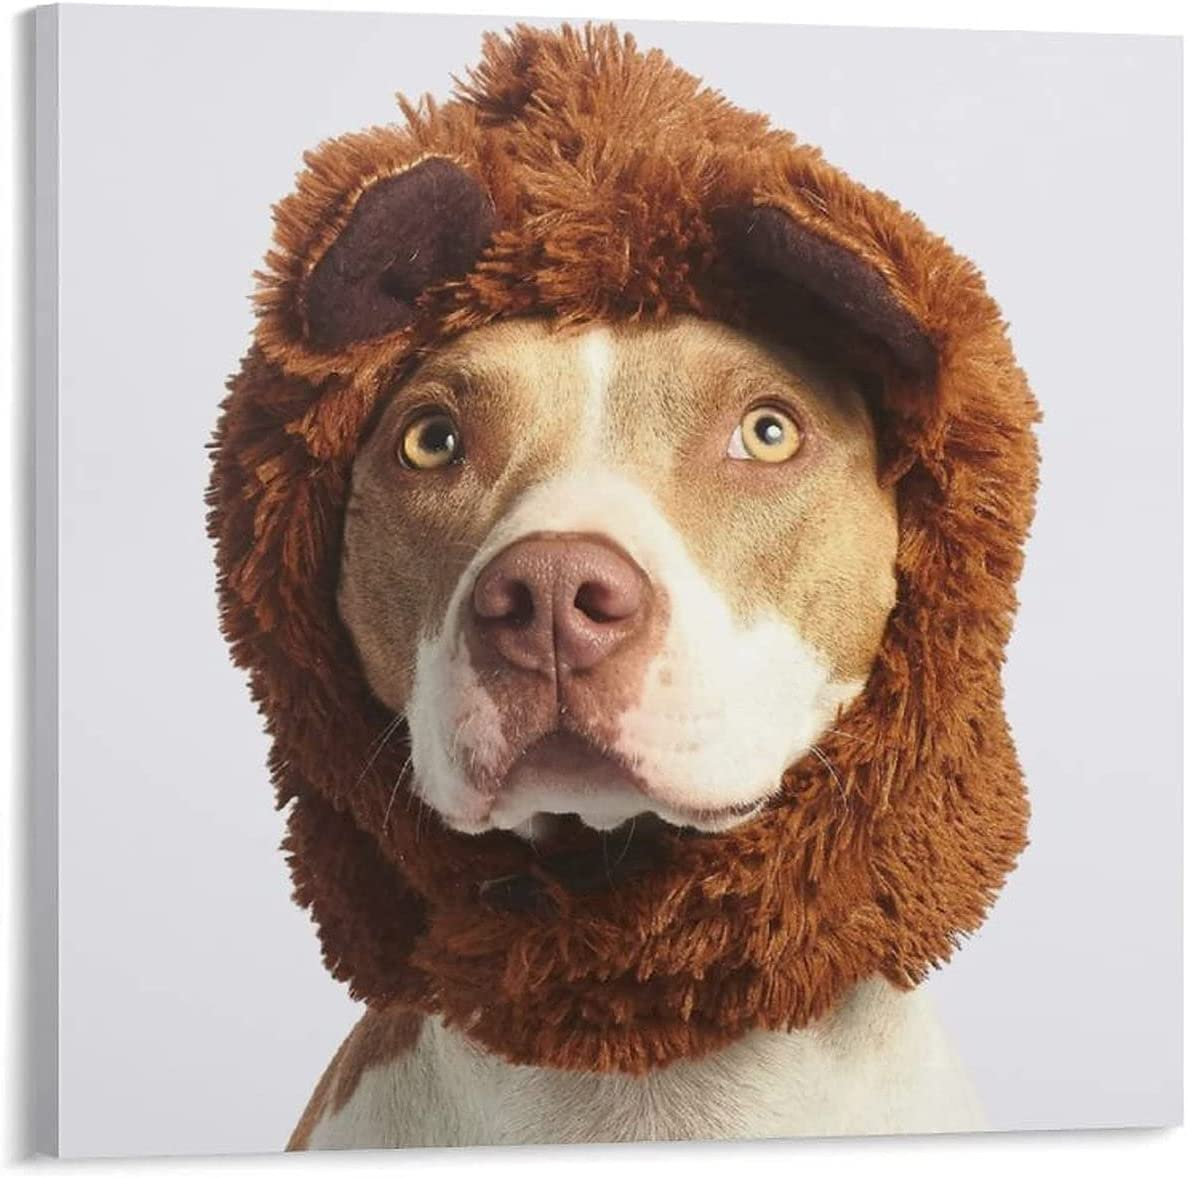 JDCUBAO High quality new Cash special price Brown and White American Costume Terrier Bull with